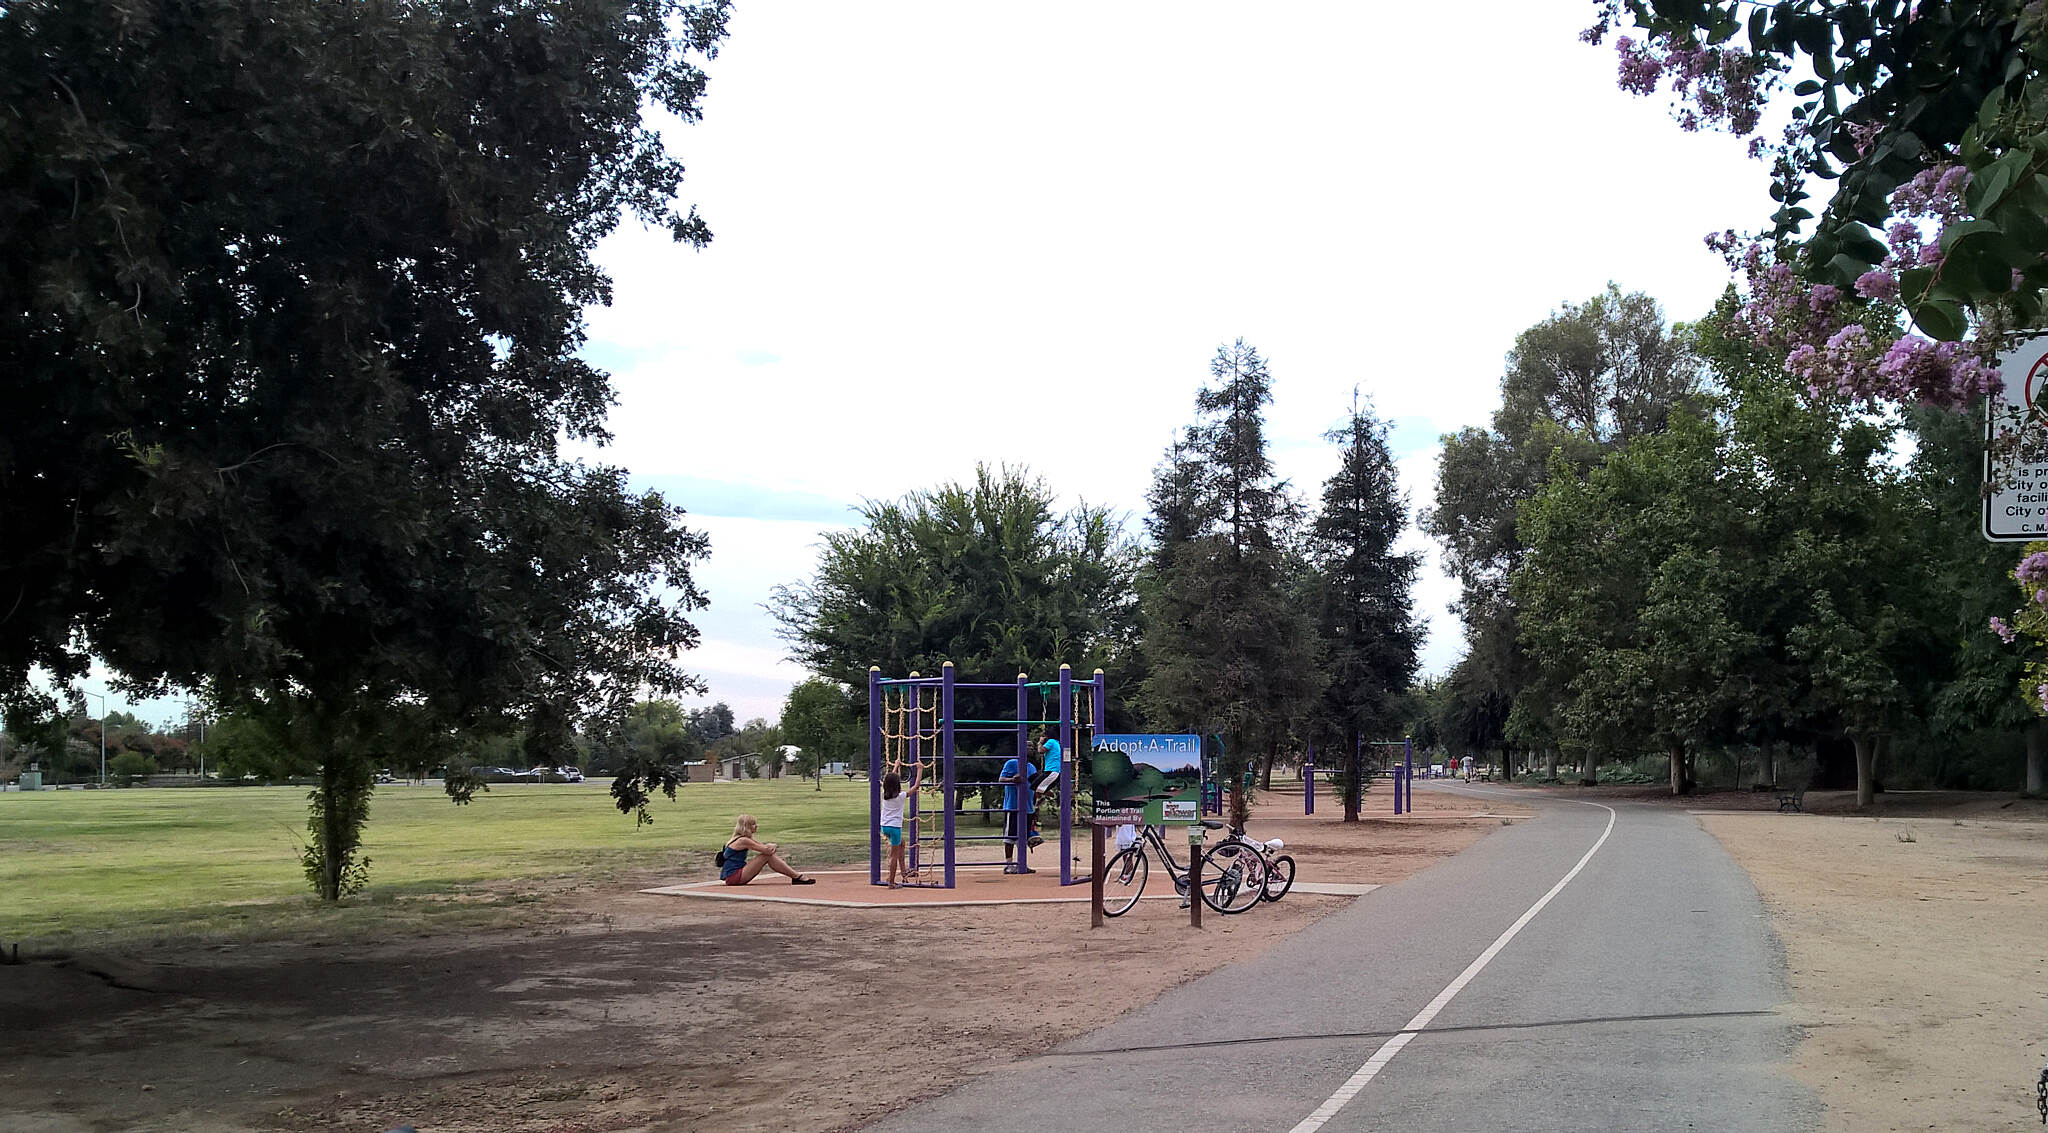 Dry Creek Trail (Clovis) Dry Creek Park There is an exercise course along the trail through Dry Creek Park. Parking, play area, covered picnic areas, and restrooms available. The Clovis Botanical Gardens is on the north side of the park.